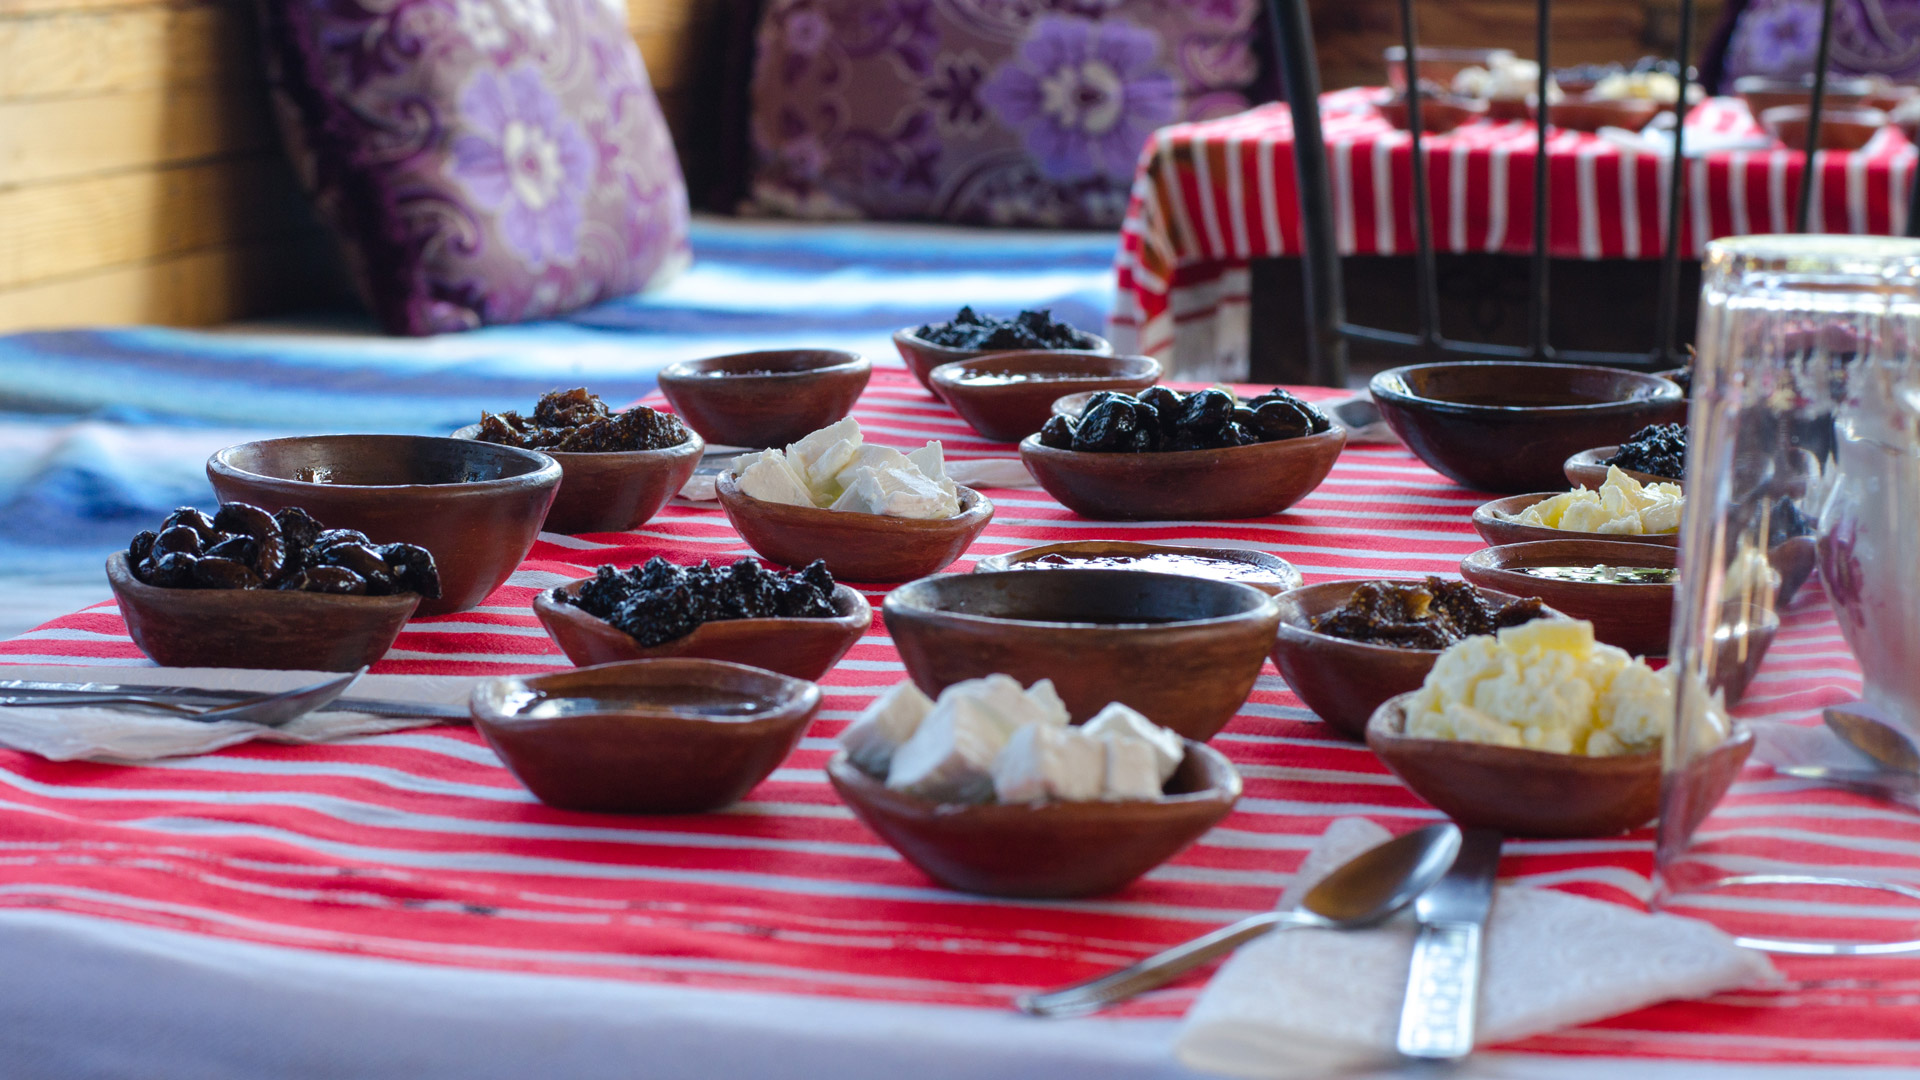 Visitors can expect home cooked meals such as tajines, and local specialties, including honey, figs and olives.